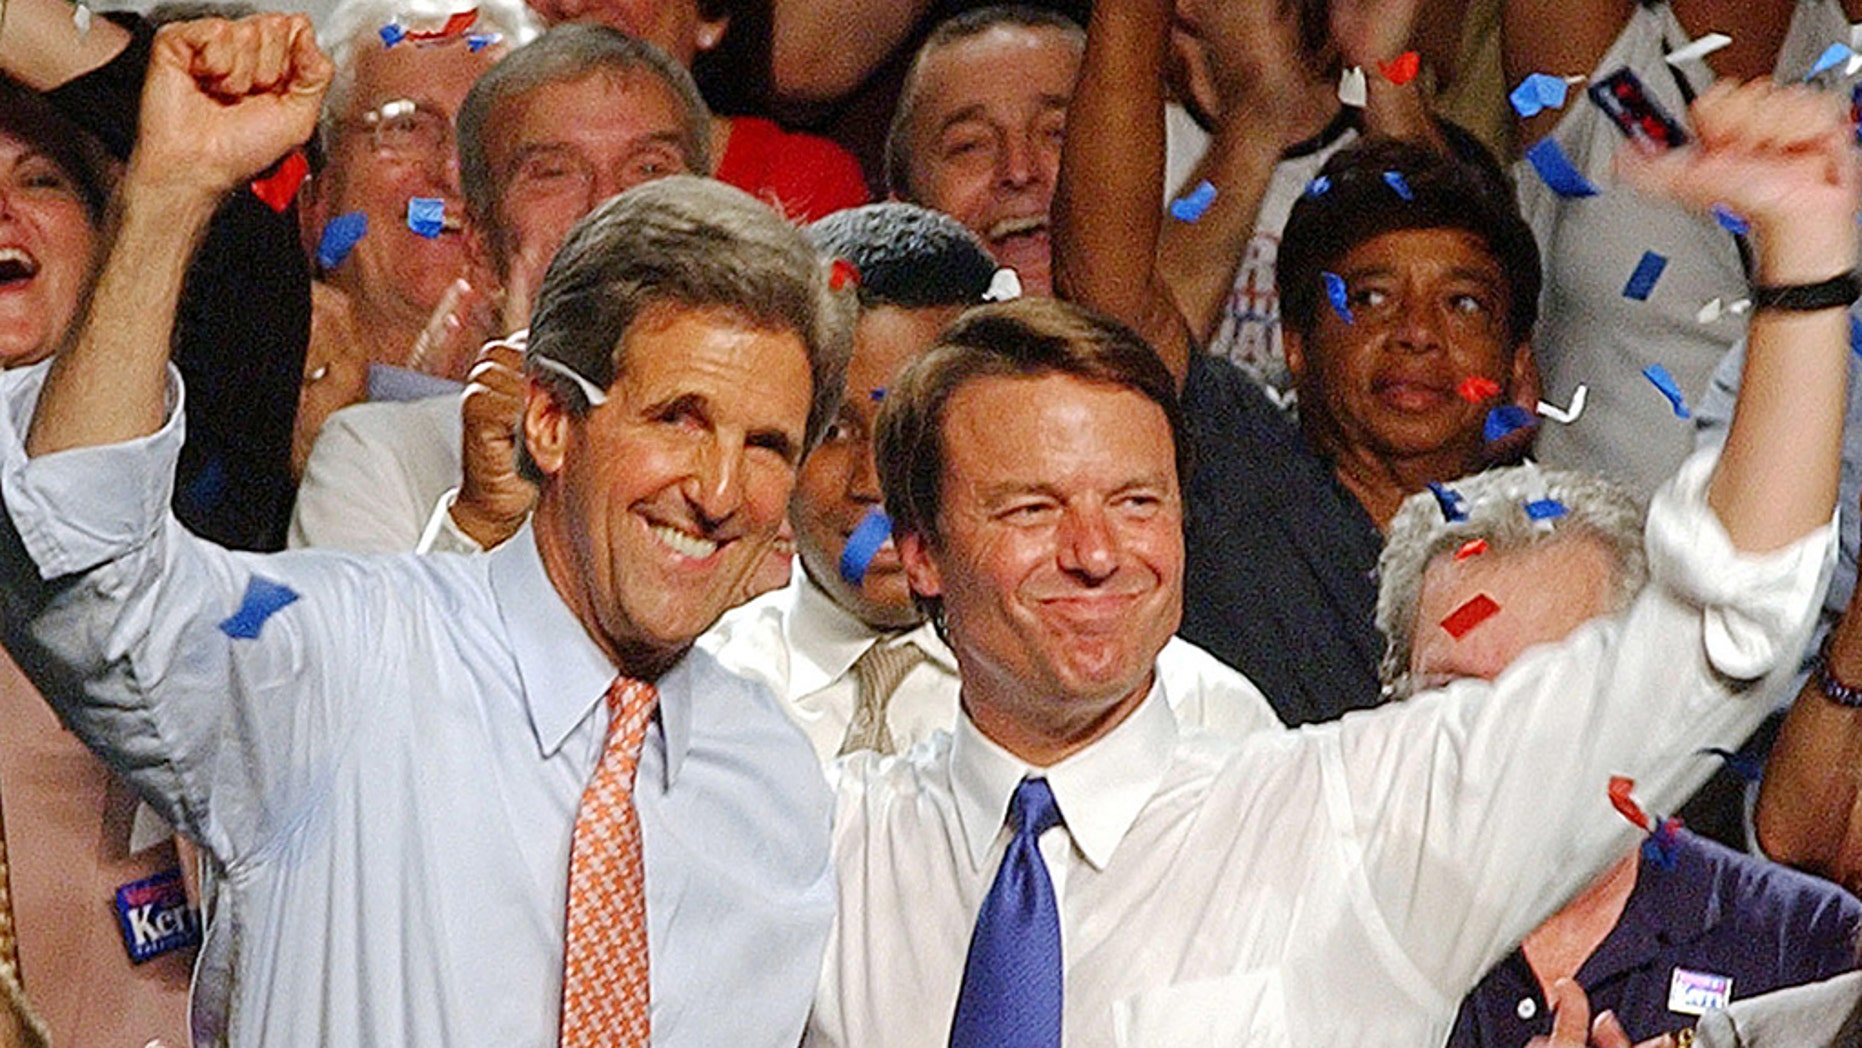 Former Secretary of State John Kerry was asked if he regretted picking his 2004 presidential running mate on the Democratic ticket, former Sen. John Edwards. (AP)